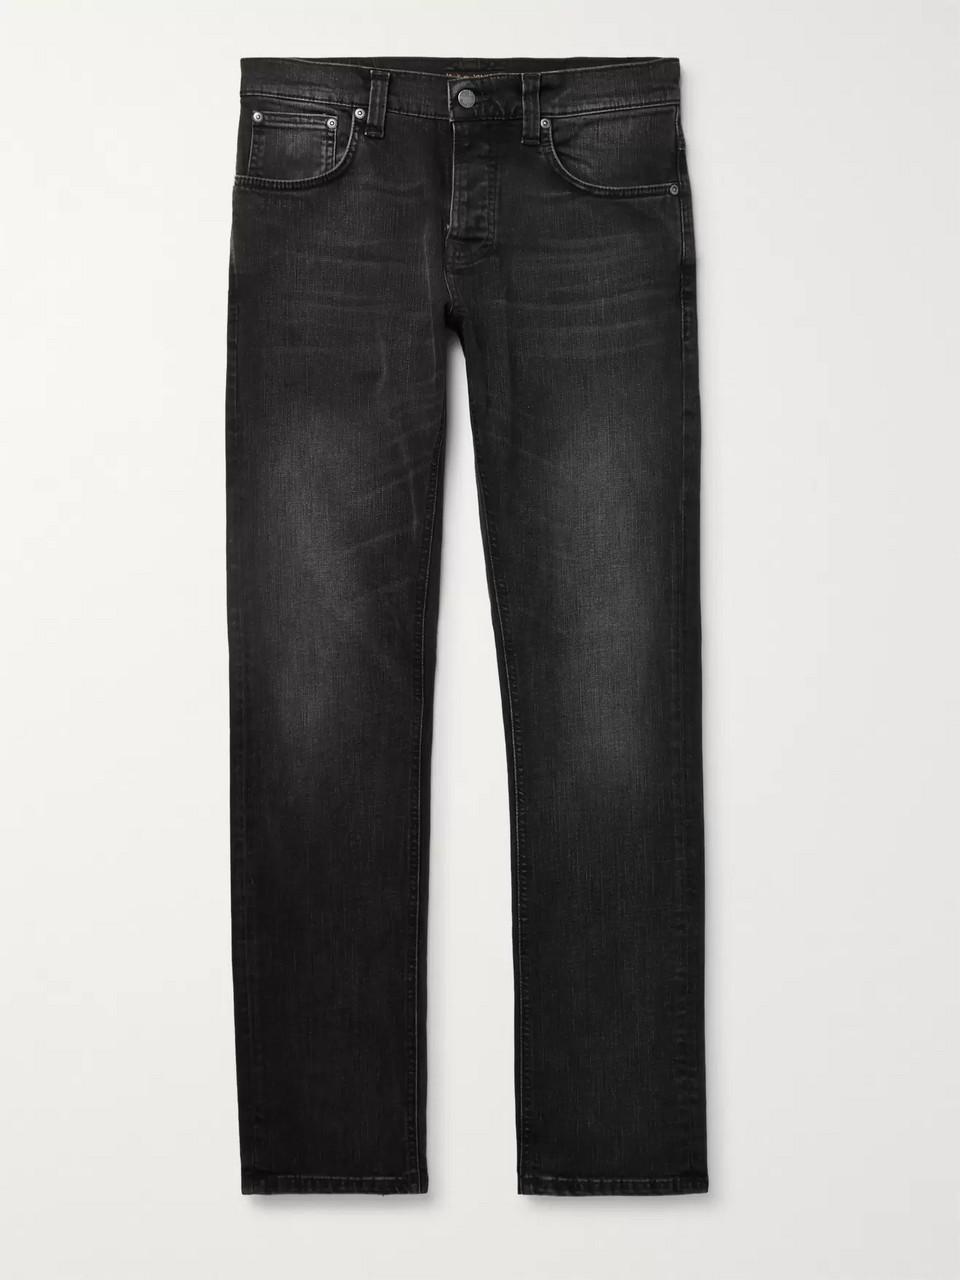 Nudie Jeans Grim Tim Slim-Fit Organic Denim Jeans